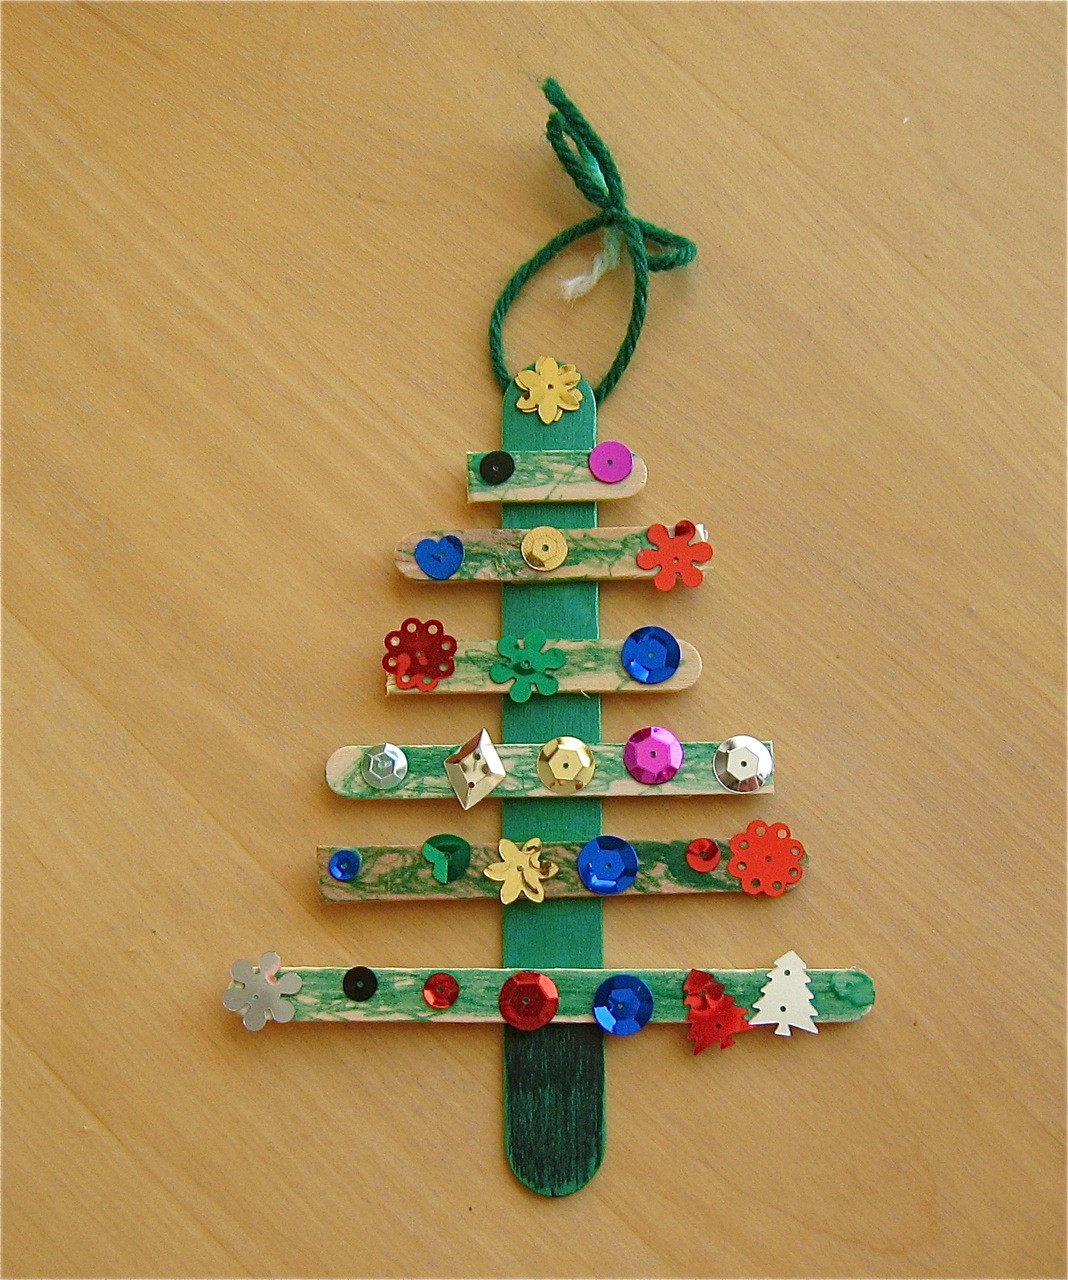 Best ideas about Holiday Craft Idea For Kids . Save or Pin Christmas Tree Craft Now.